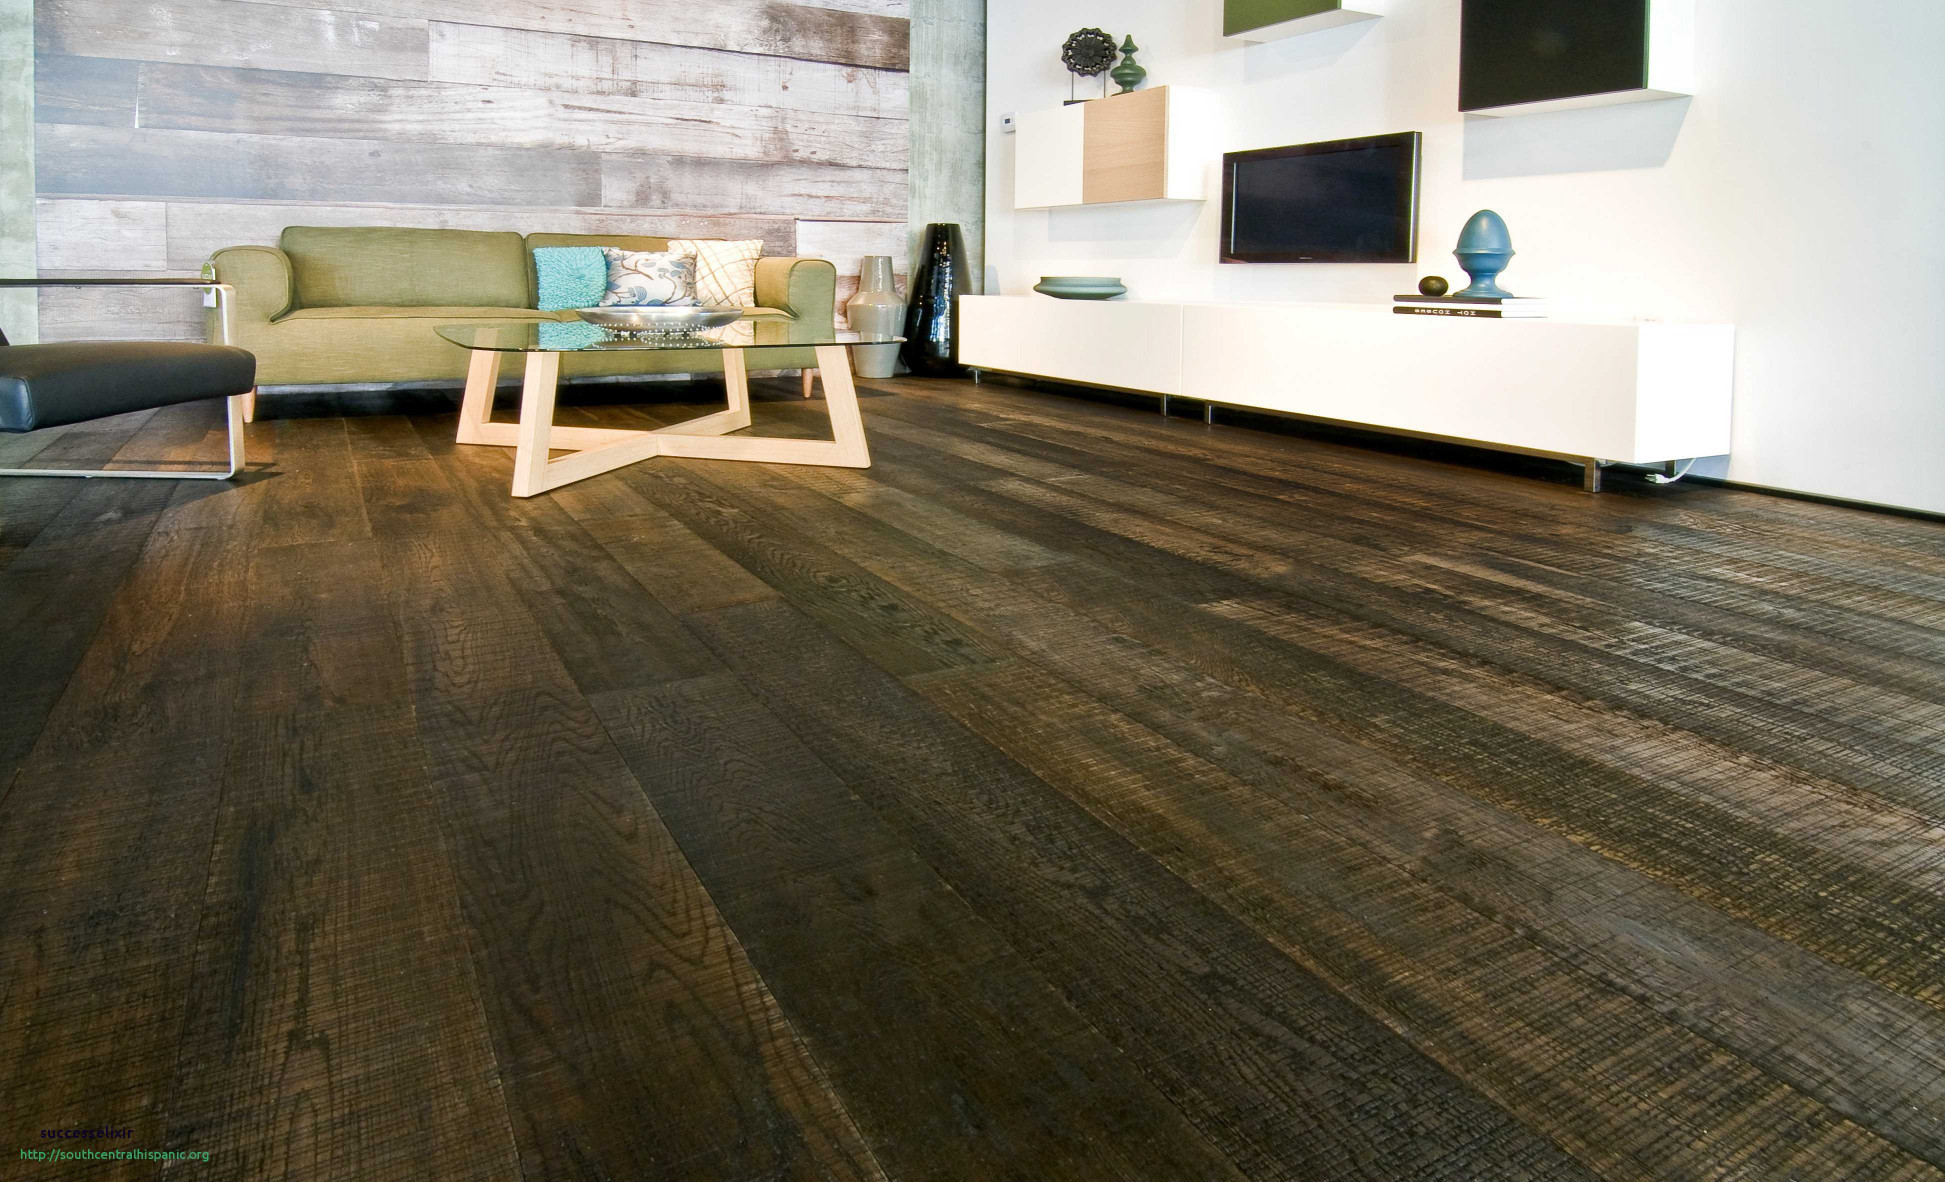 Engineered Hardwood Flooring Nailer Of the Wood Maker Page 6 Wood Wallpaper for 10 Inspirational Ceramic Wood Flooring Inspirations